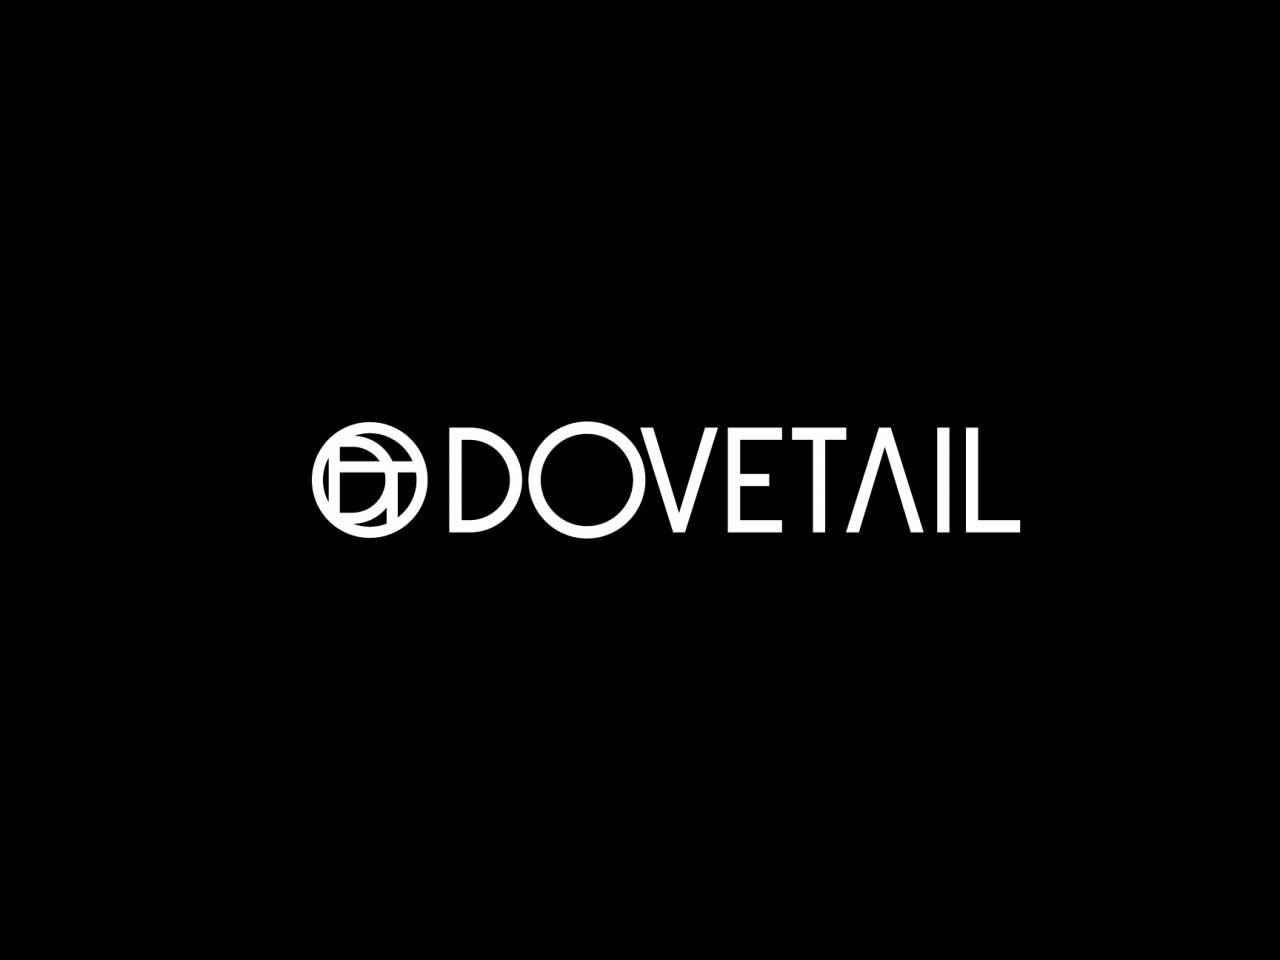 DOVETAIL S/N003